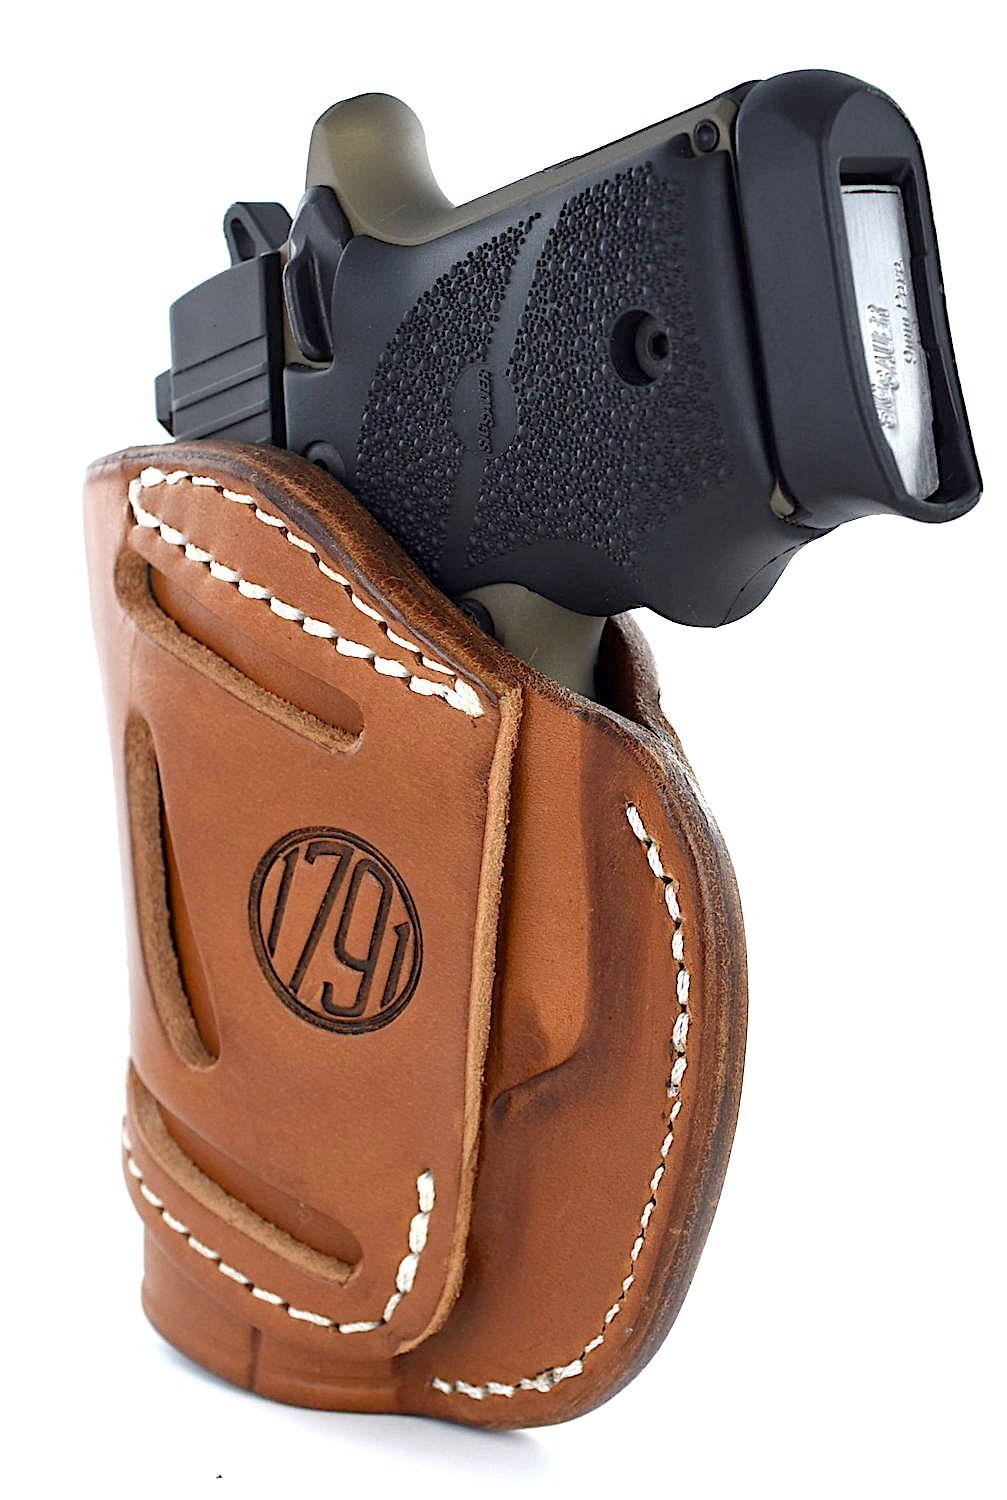 Cheap Sw 380 Holster, find Sw 380 Holster deals on line at